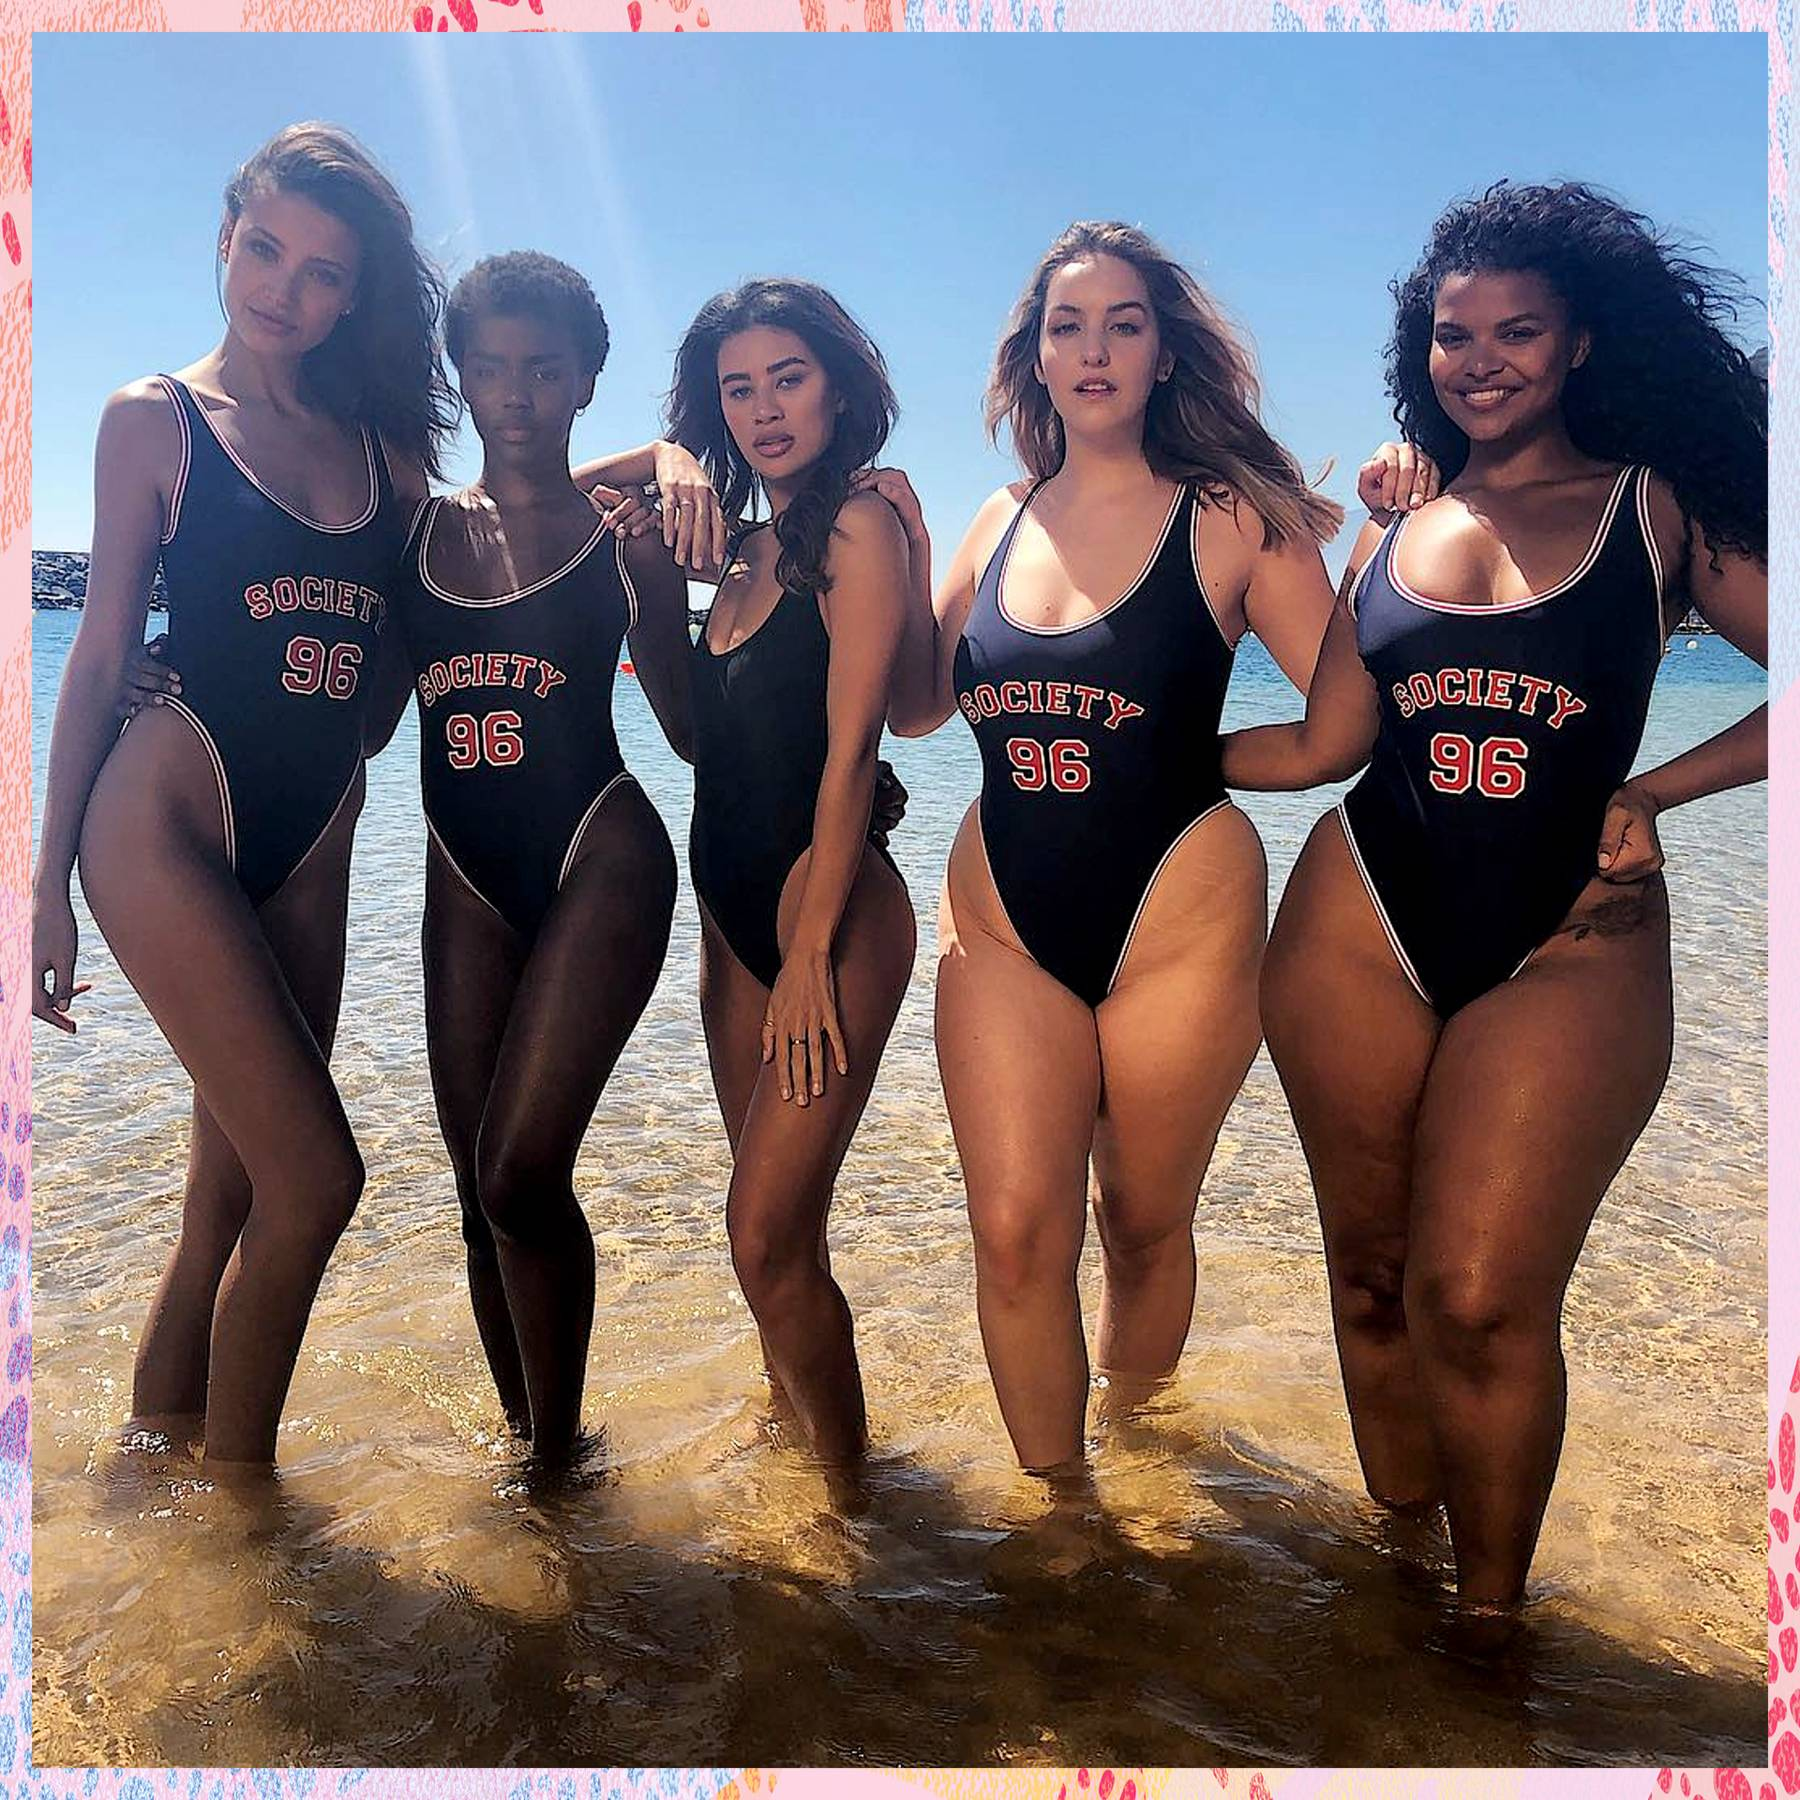 This inclusive swimwear brand is all over Instagram already this Spring